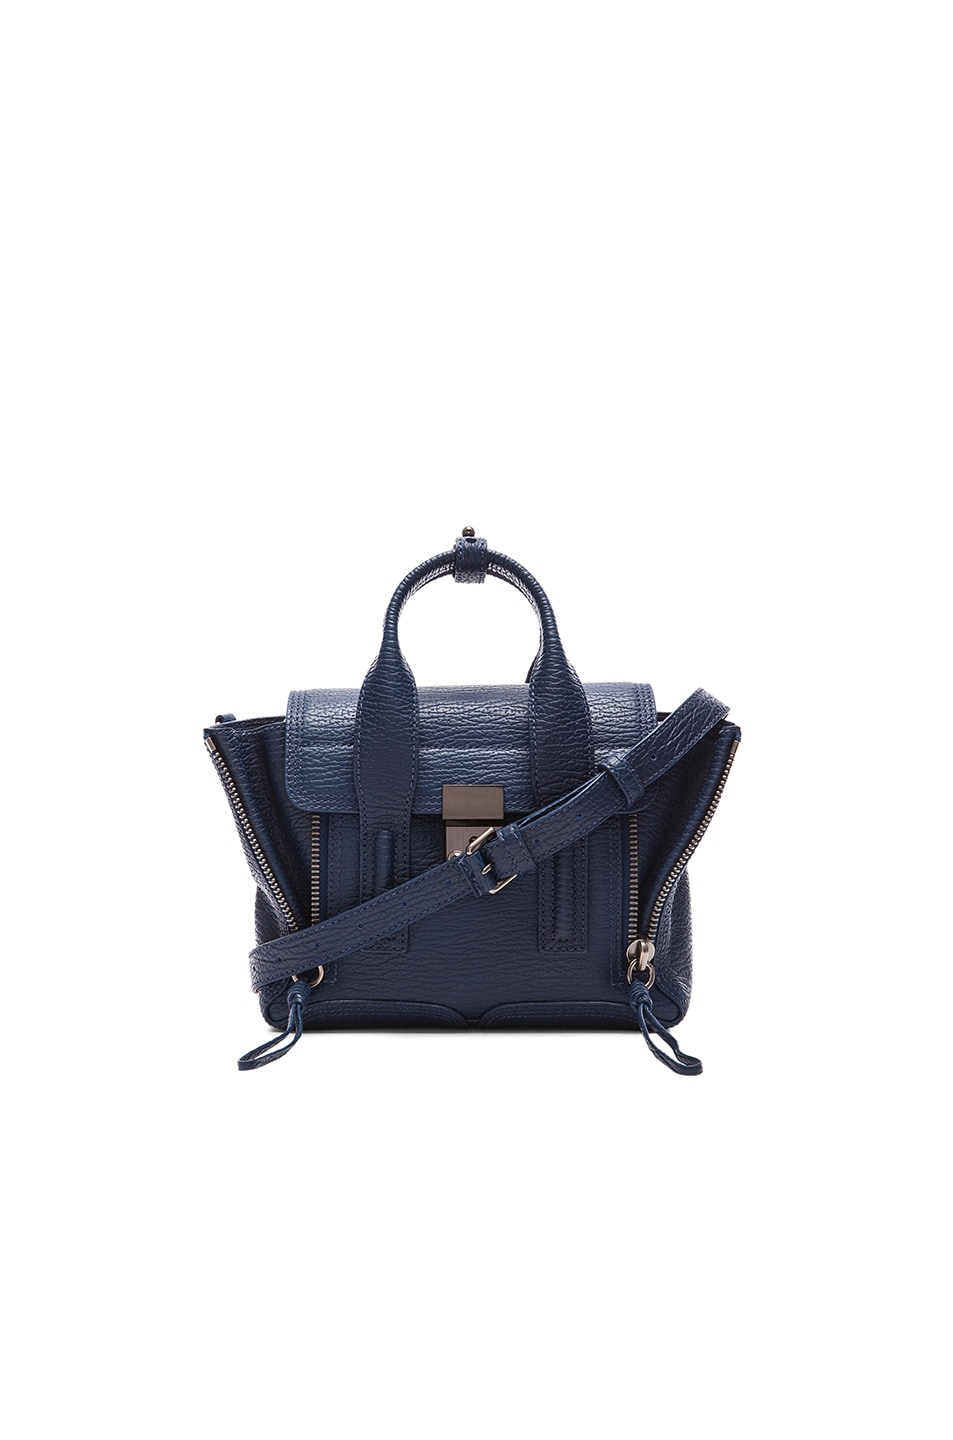 Image 1 of 3.1 phillip lim Mini Pashli Satchel in Lapis